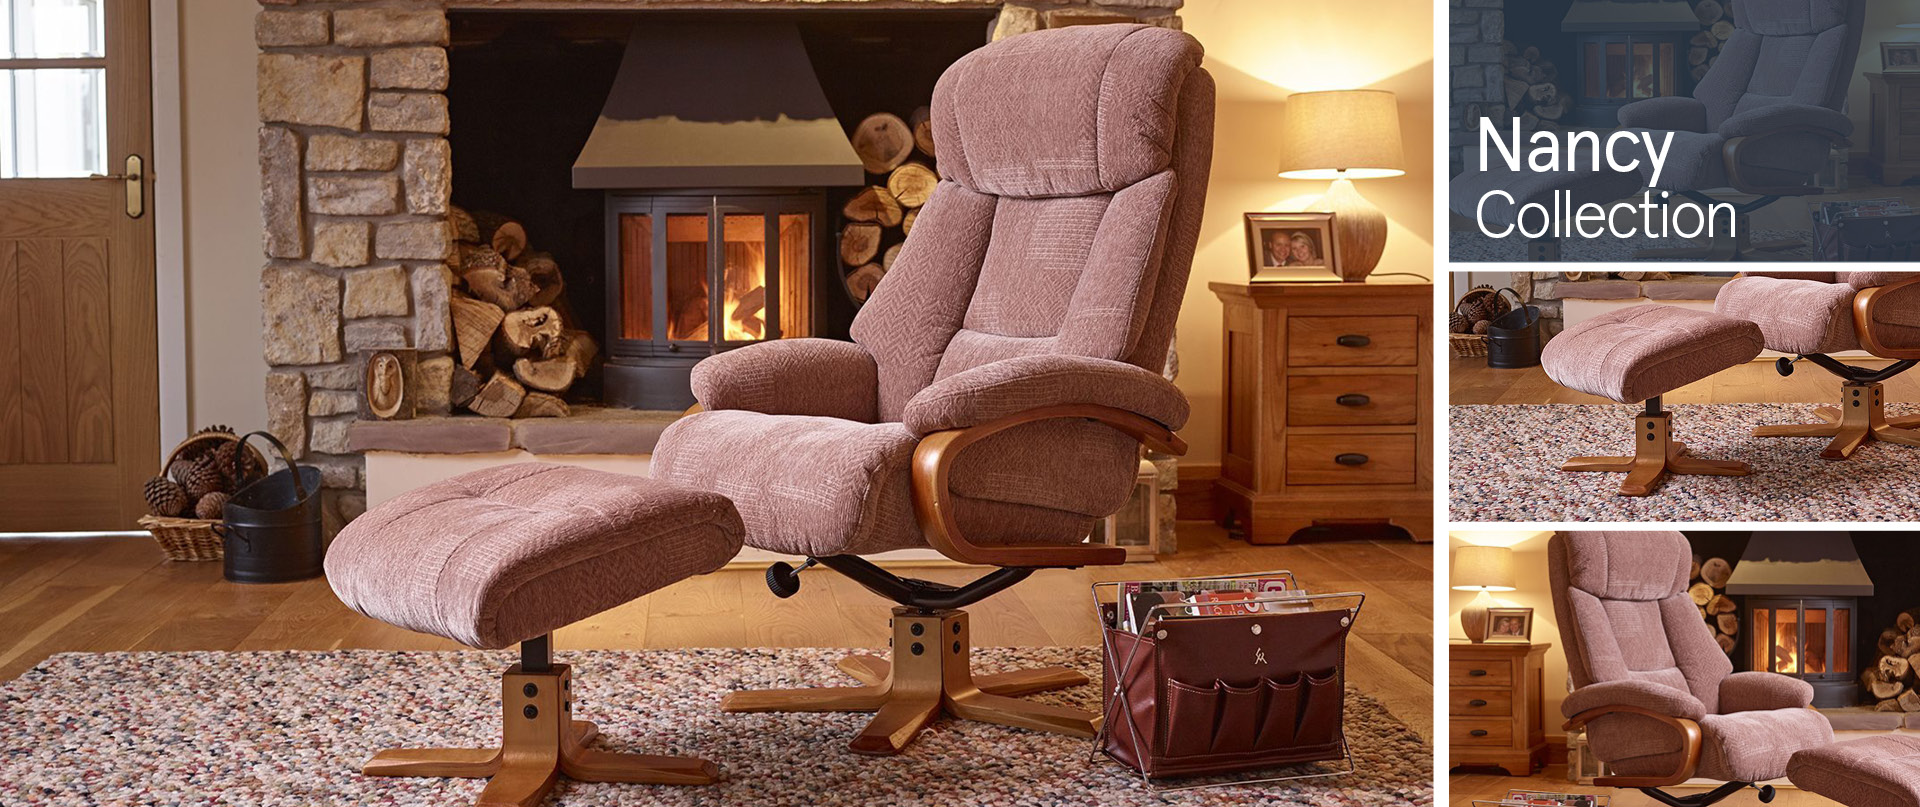 Nancy All Chairs and Footstools Ranges